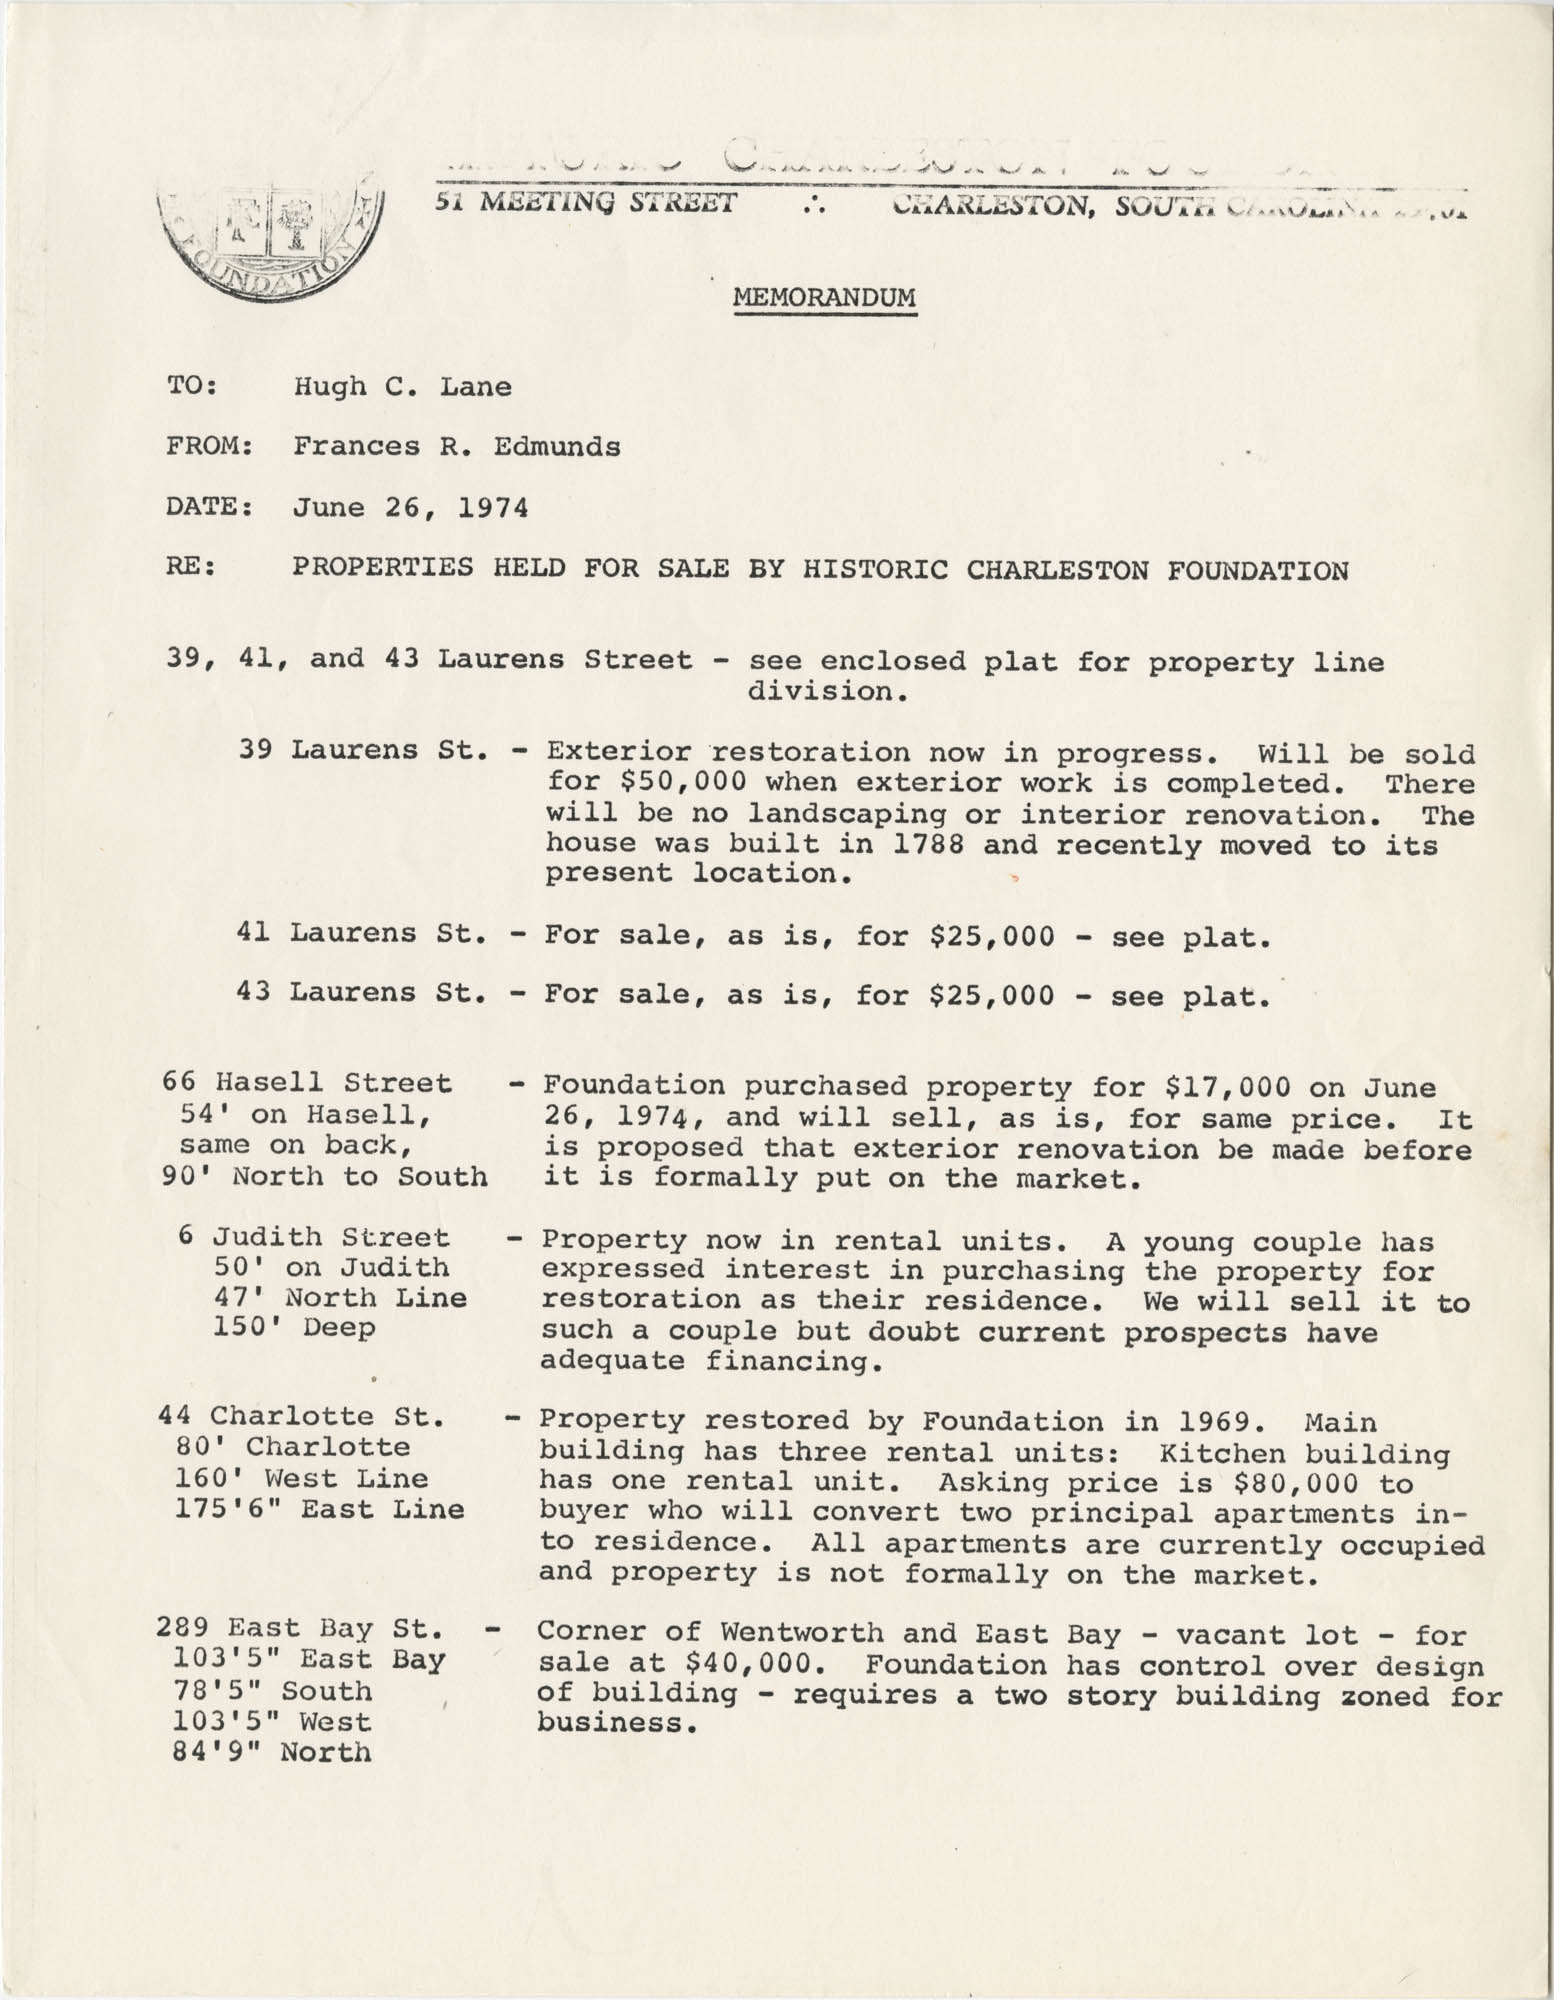 Memorandum from Frances R. Edmunds to Hugh C. Lane